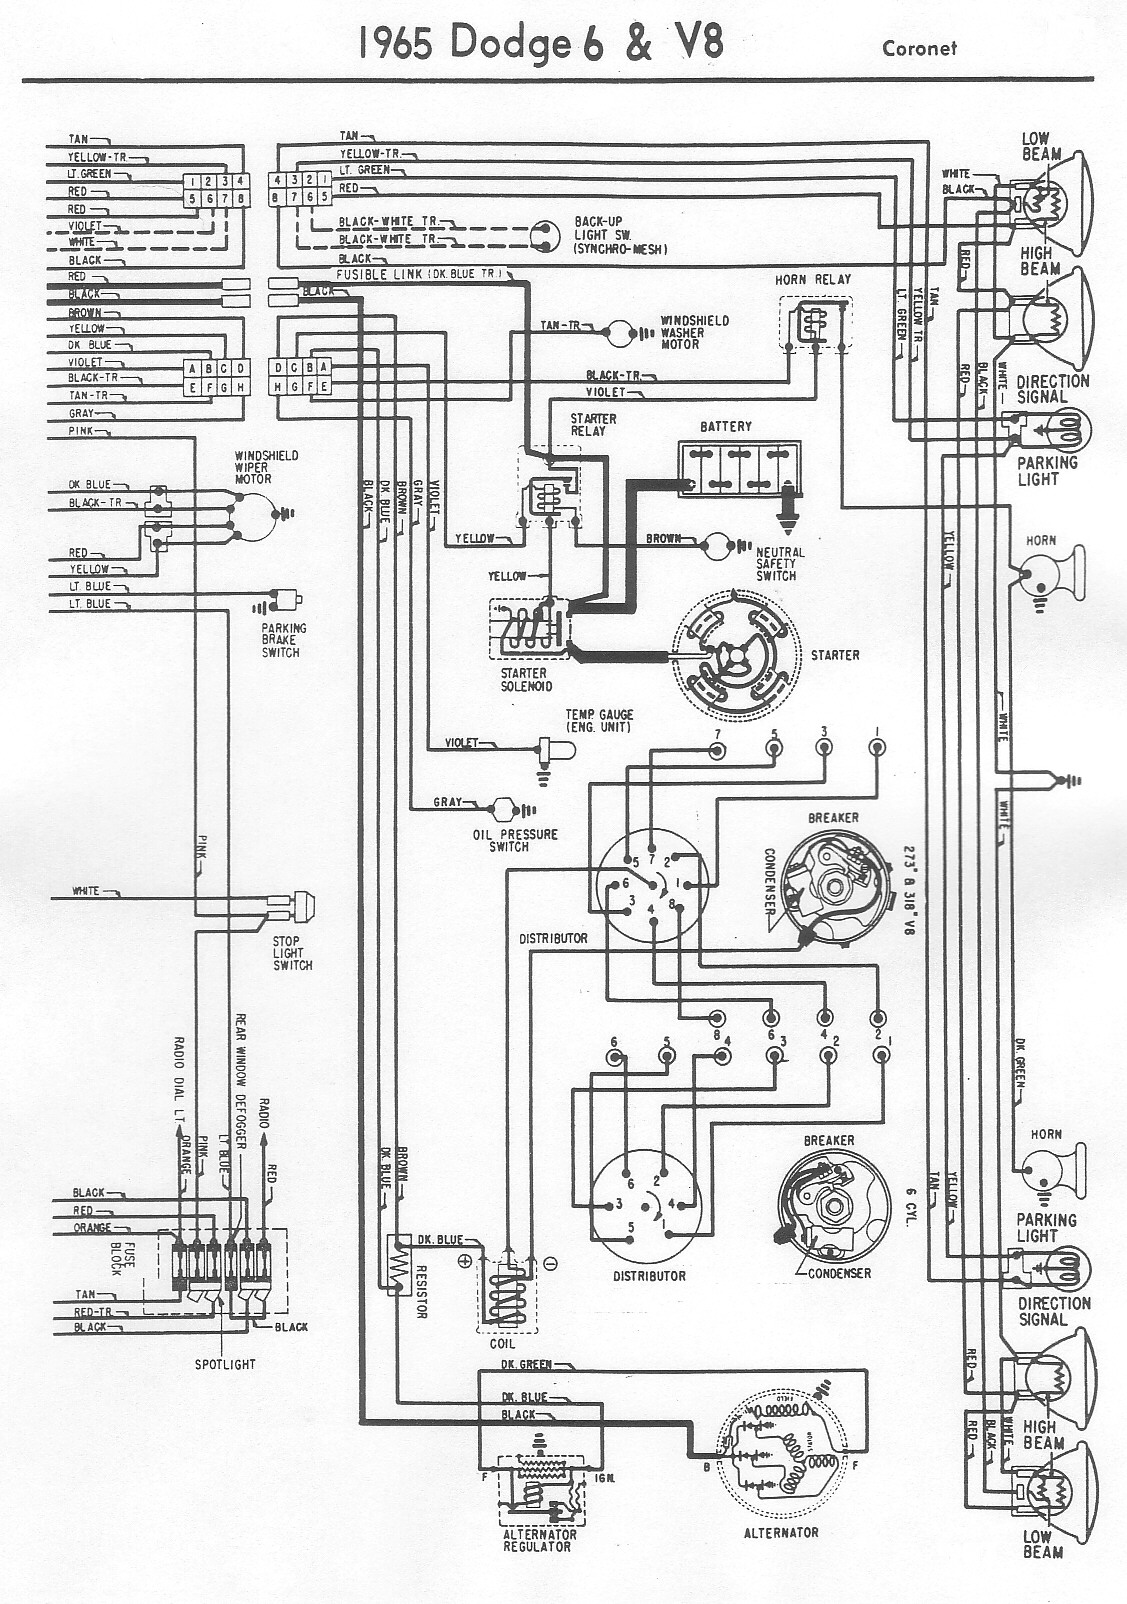 1965 wiring diagram vintage dodge coronet2 1966 dart wiring diagram 1966 caprice wiring \u2022 wiring diagrams  at alyssarenee.co